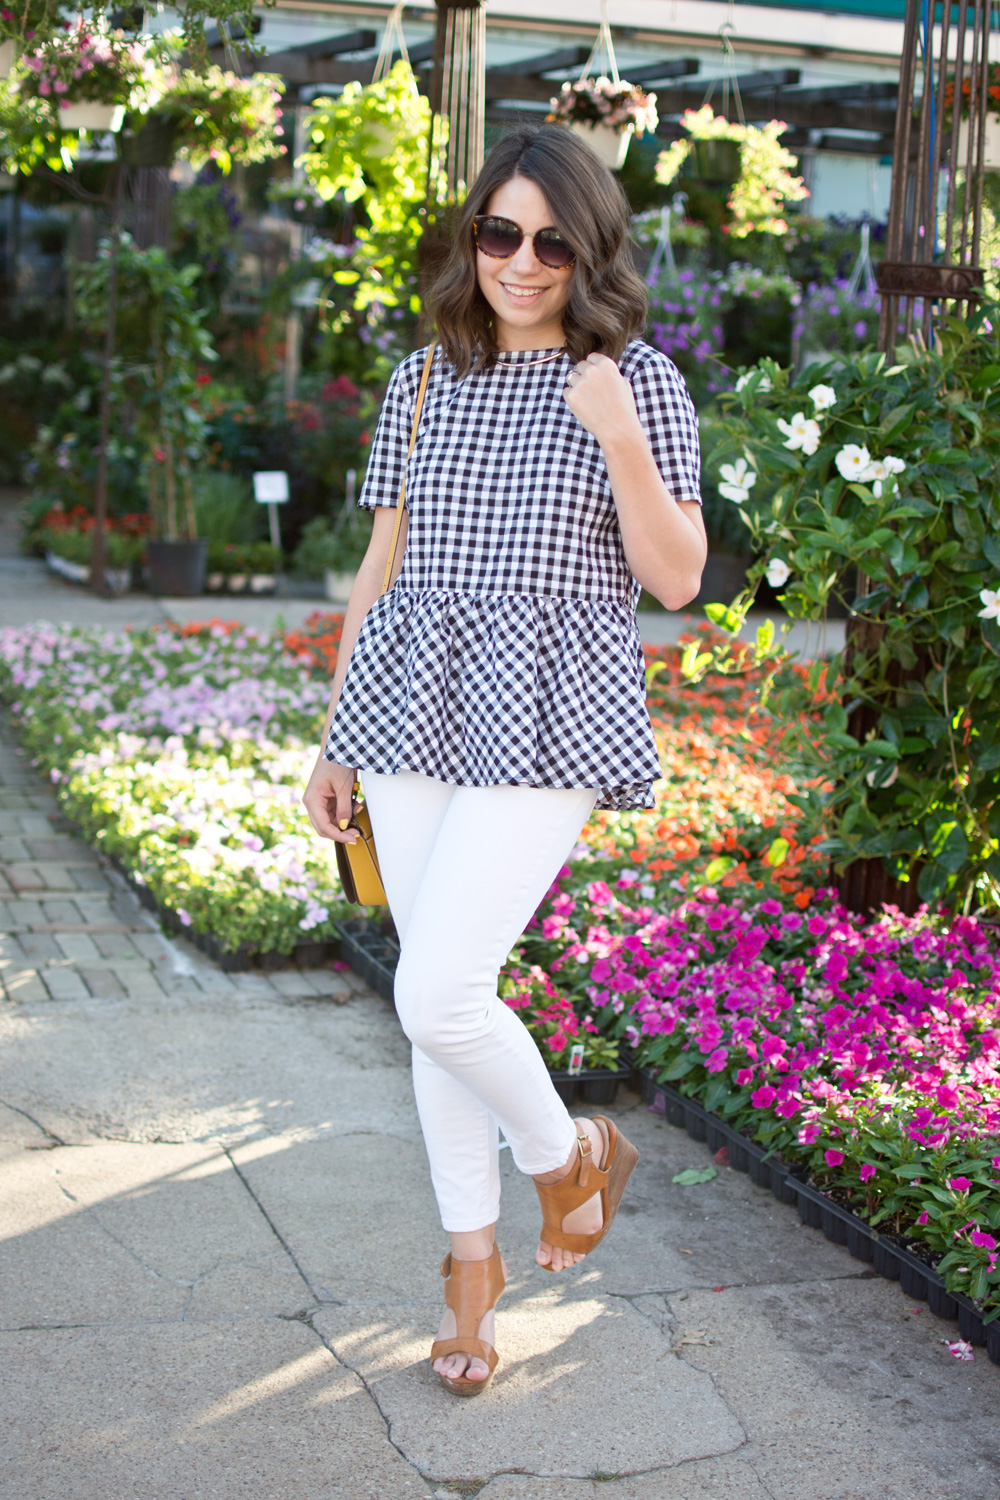 summer outfit idea, fashion blogger, gingham print outfit, gingham, shein fashion blogger, spring fashion, summer style, ootd, outfit, style blogger